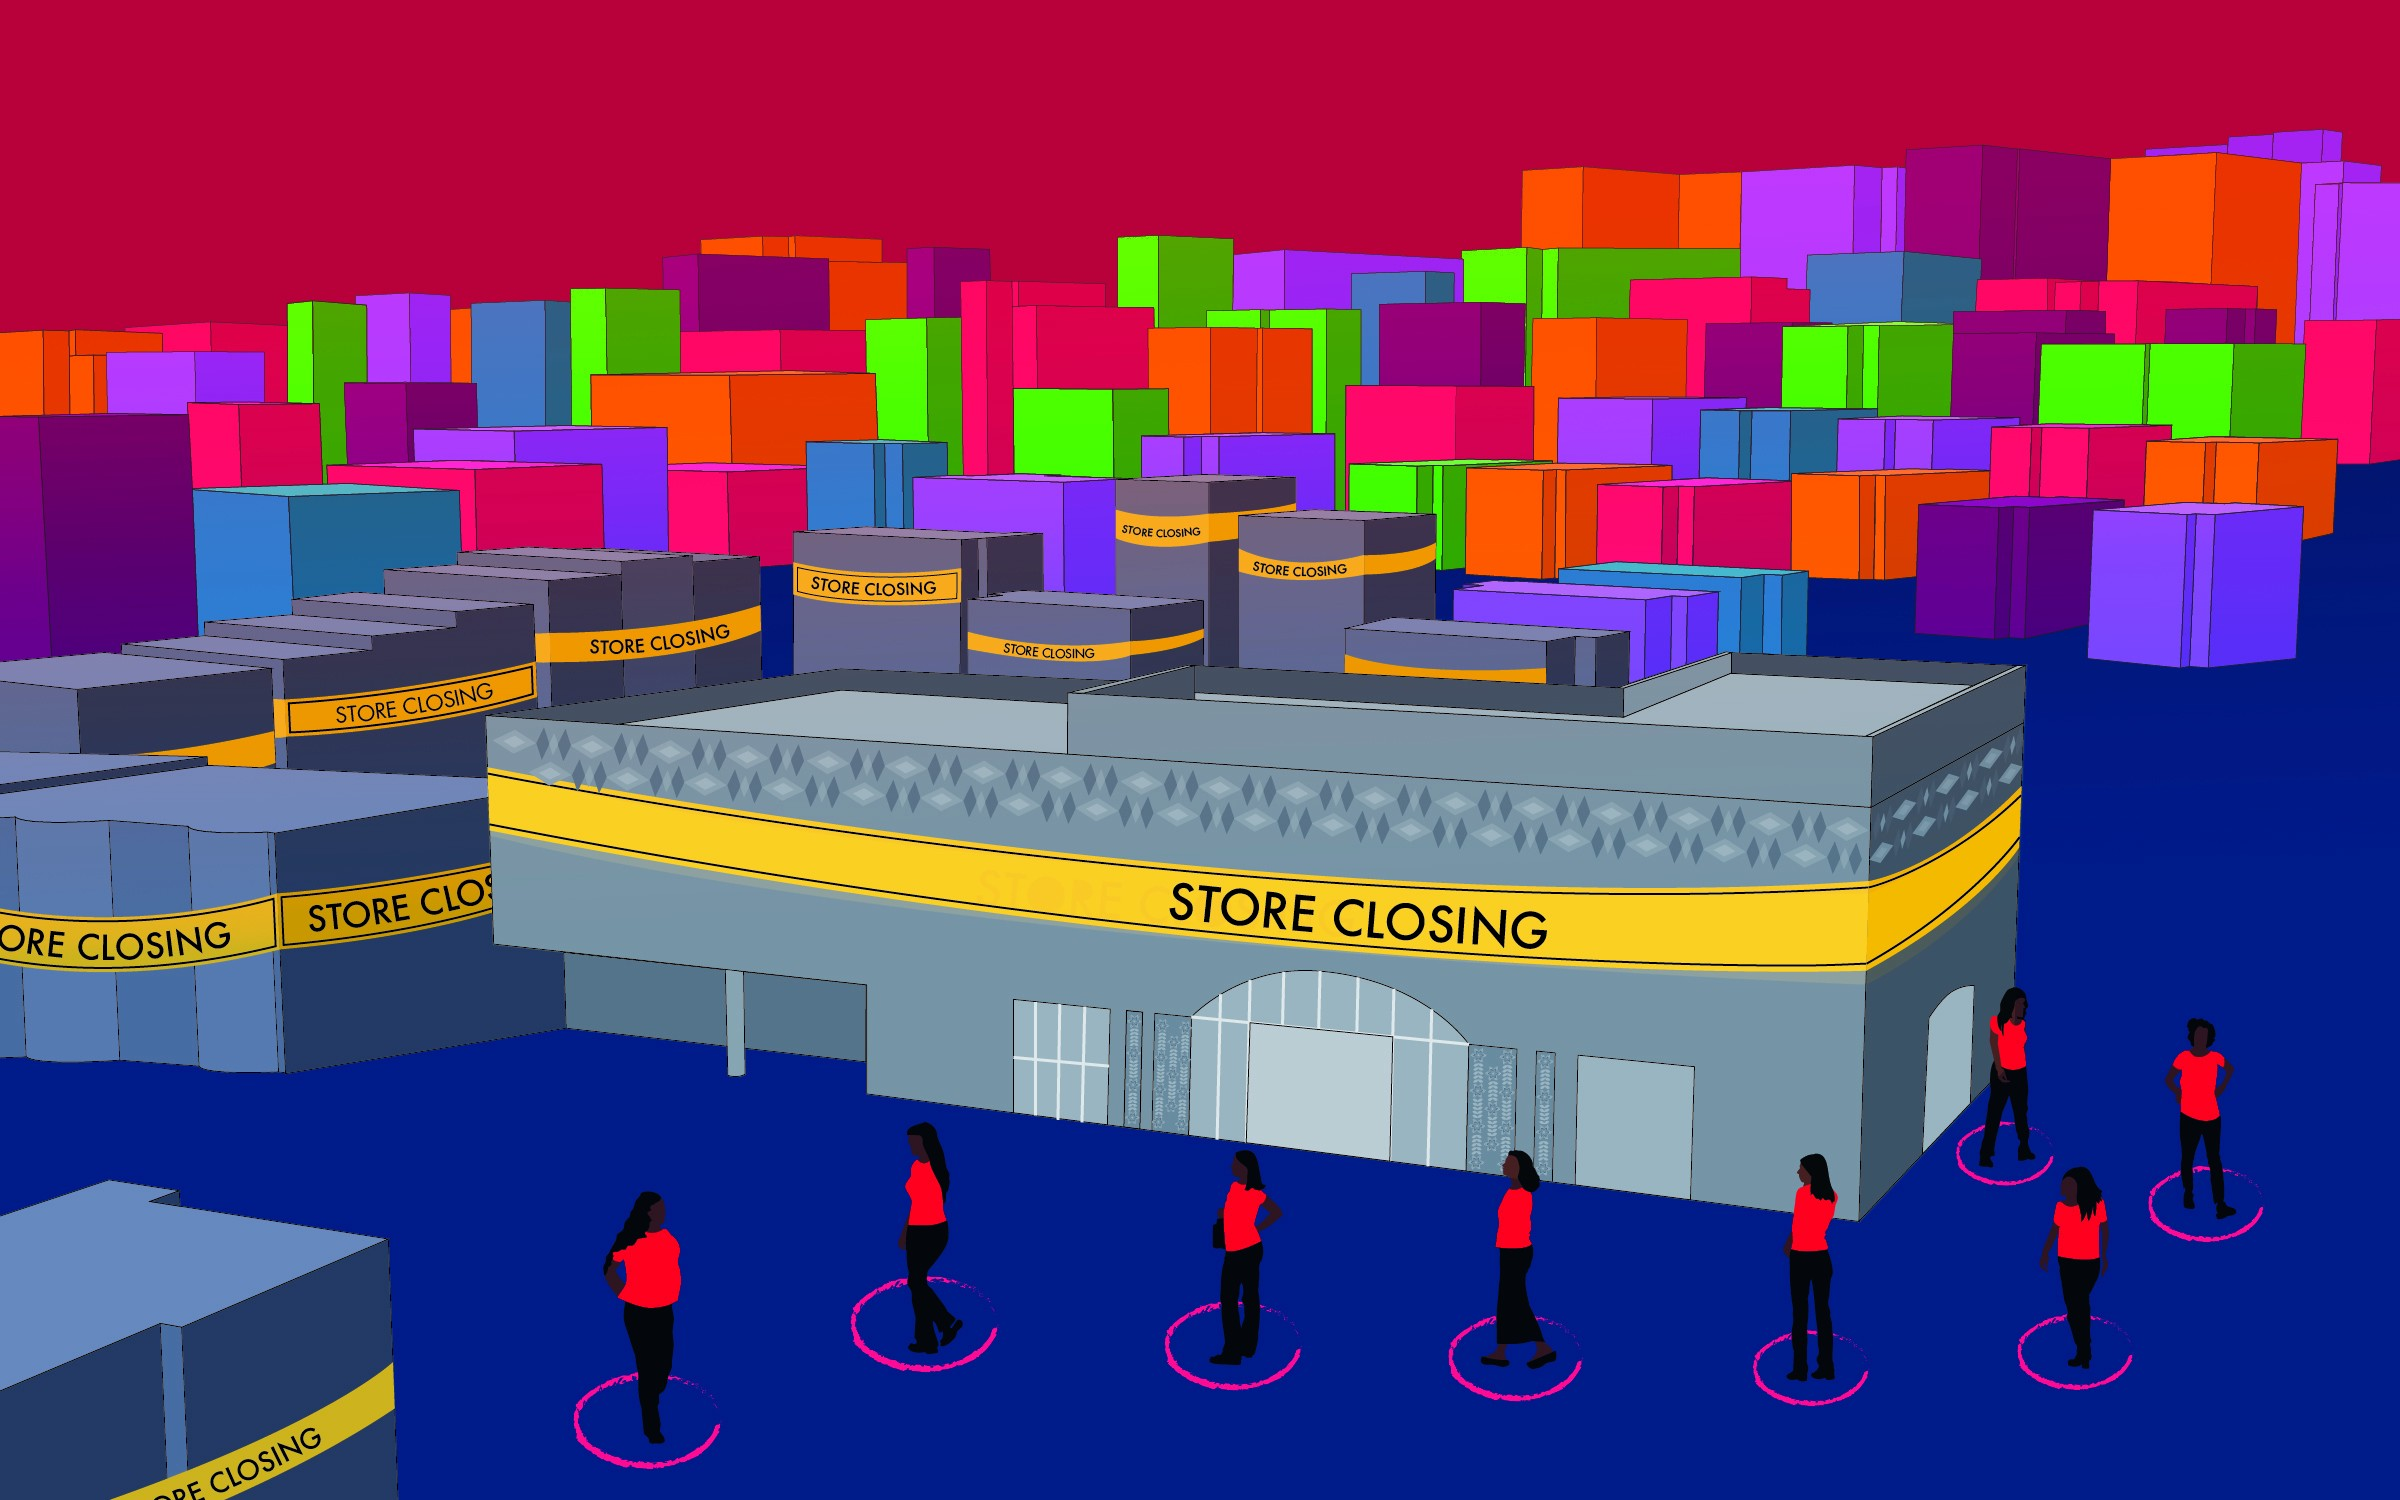 """A graphic illustration of a big store with a """"store closing"""" sign wrapped around it. Women wait in line 6 feet apart."""